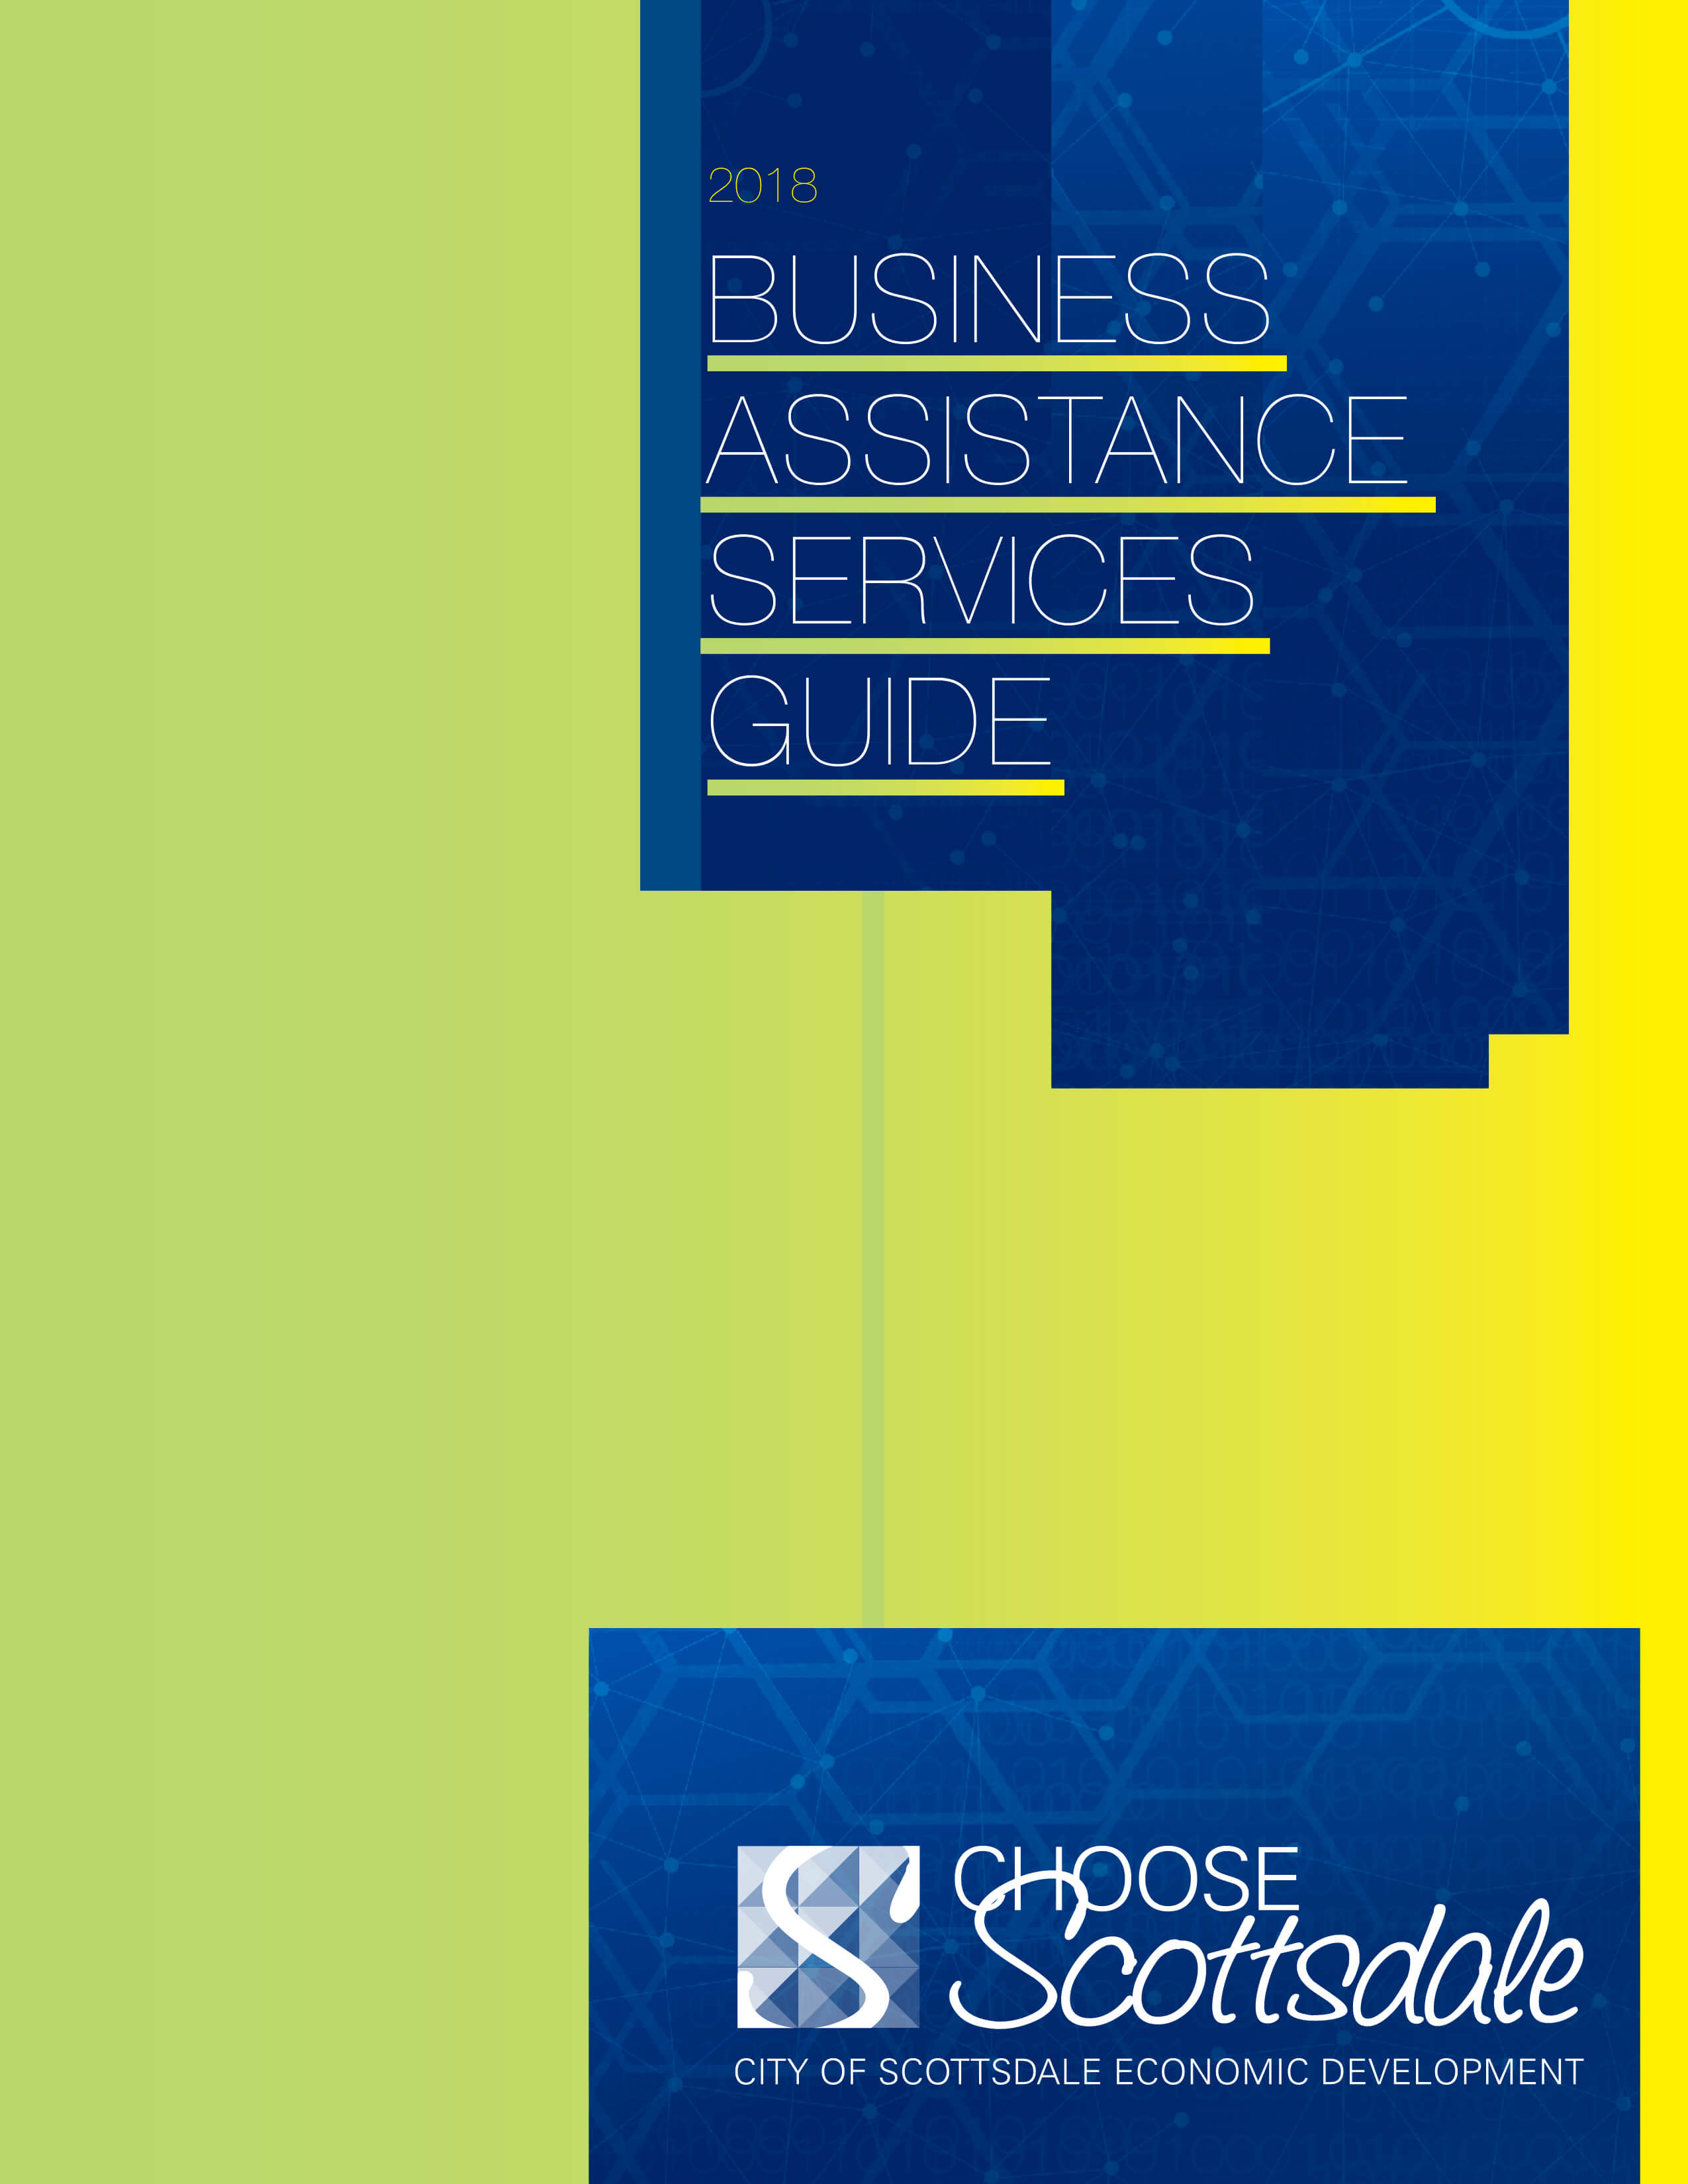 business assistance service guide